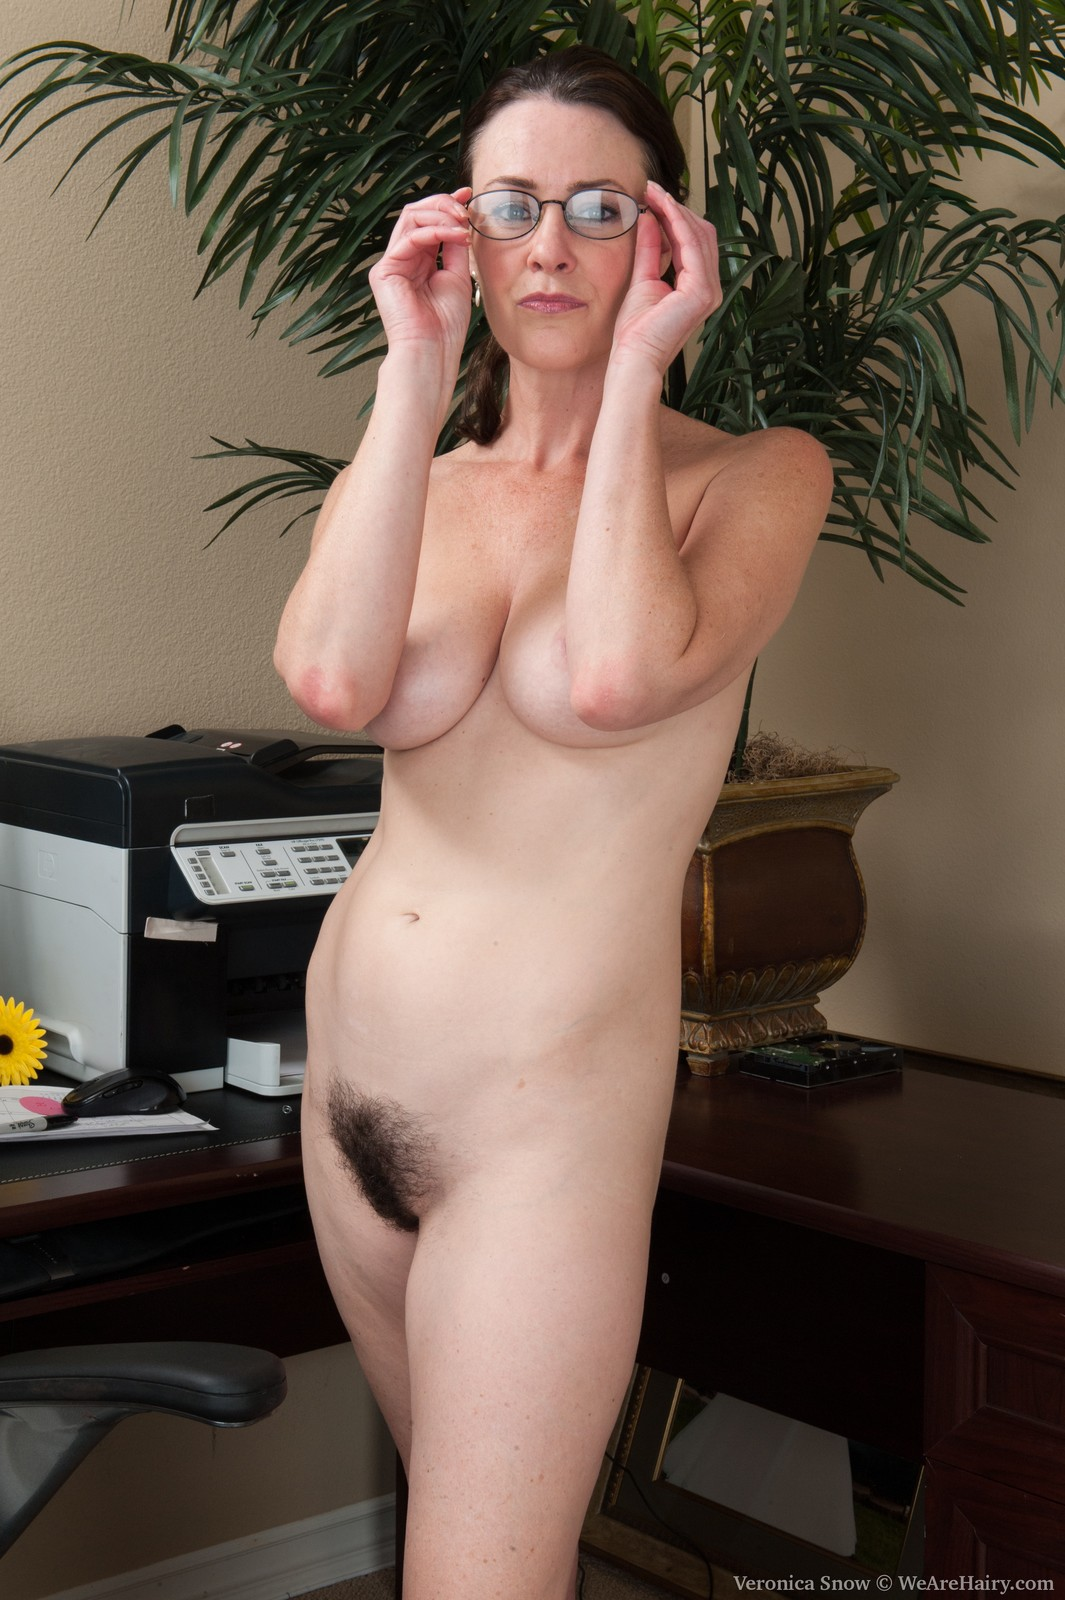 Milf fully frontal then the